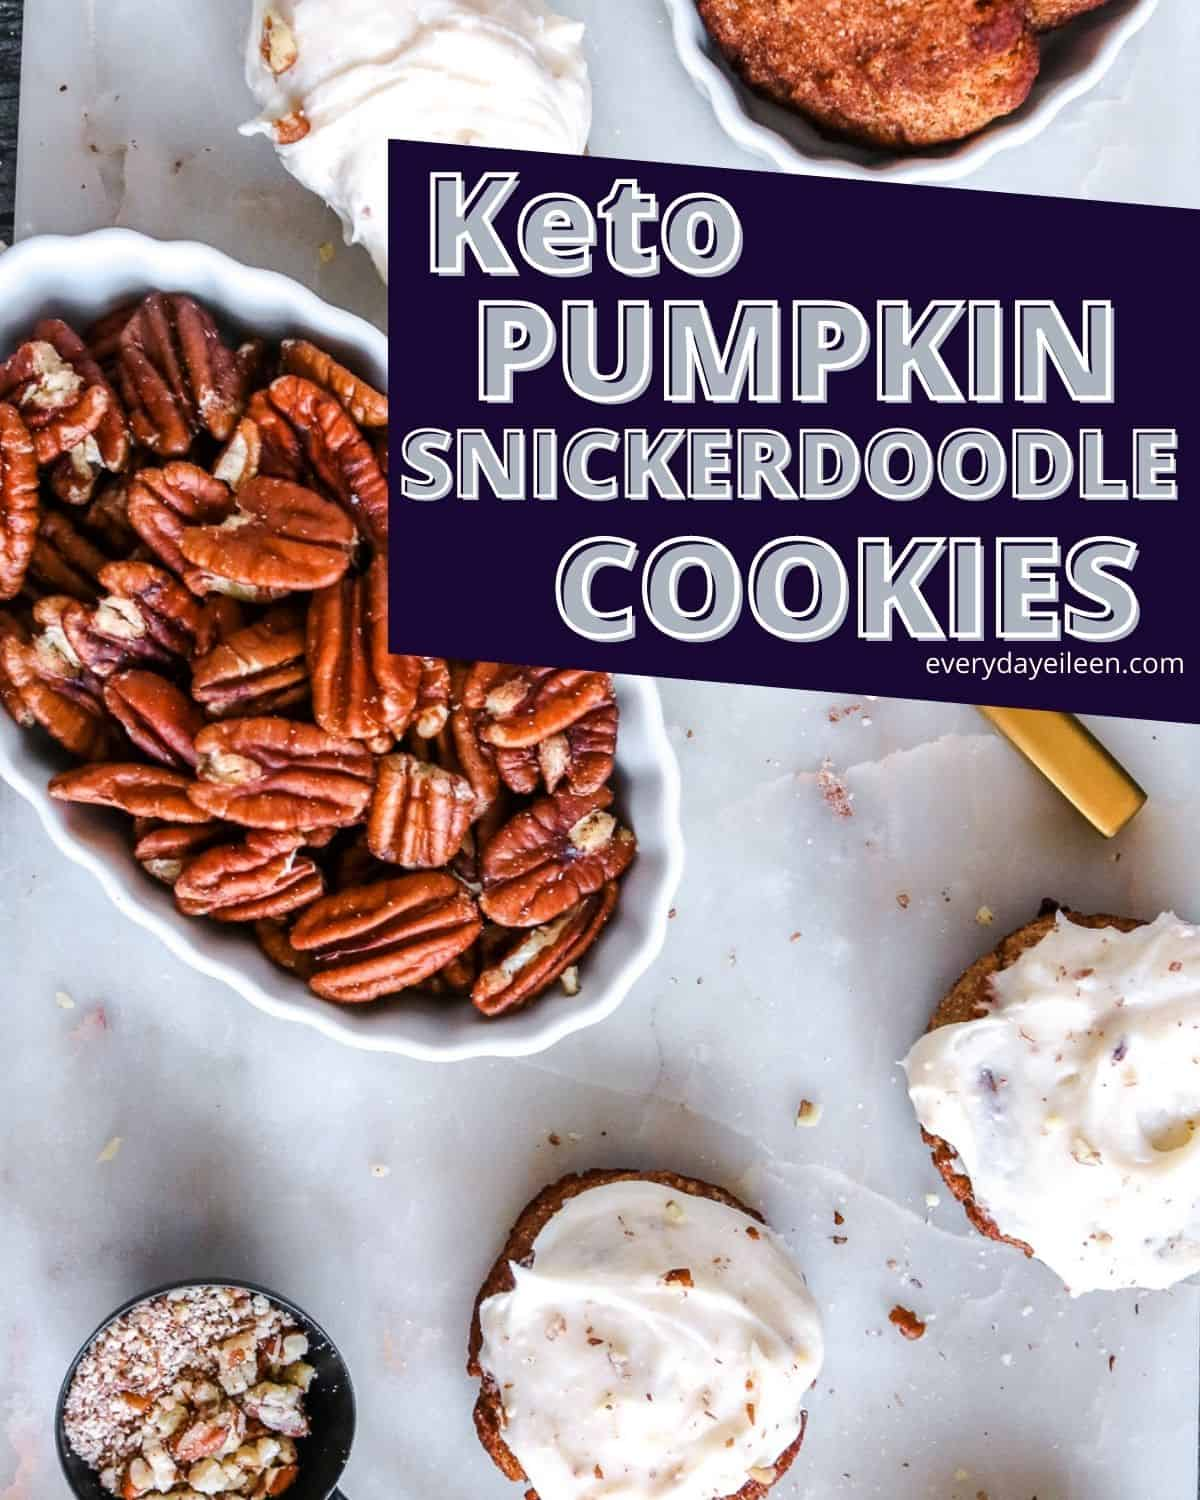 Keto Pumpkin Snickerdoodle Cookies recipe, soft and loaded with flavor. These delightful treats are topped with a luscious cream cheese and pecan frosting that will rock your world. There's no reason to over stress about the carb with these decadently delicious cookies. #ketocookies #ketosnickerdoodle #ketoholidaybaking #everydayeileen via @/everydayeileen/